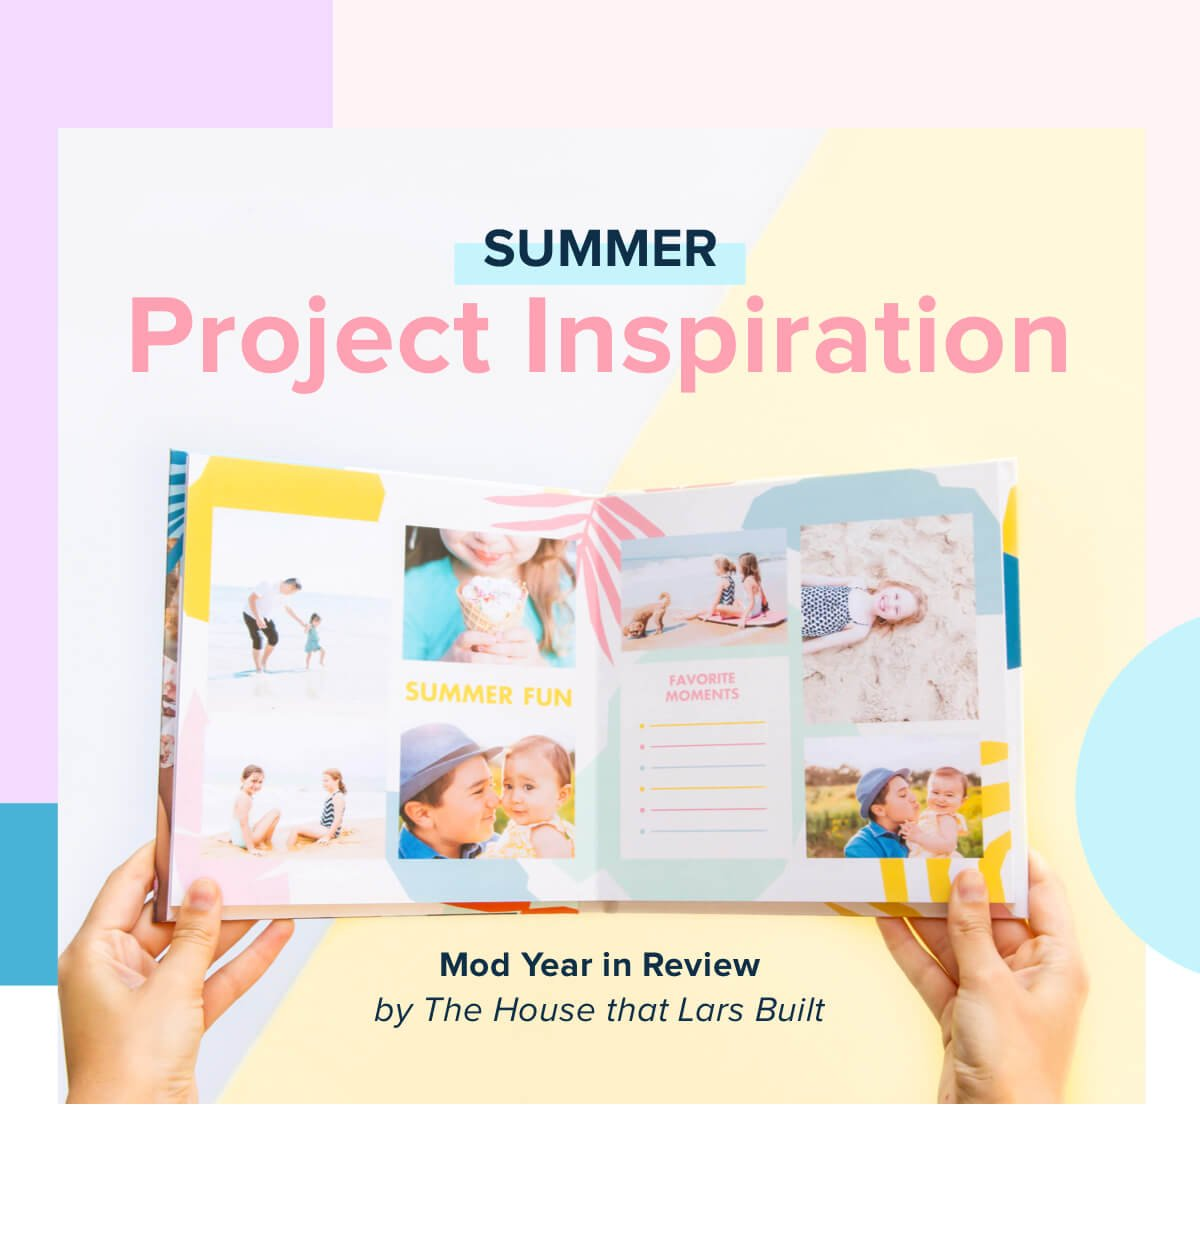 Summer Project Inspiration - Mod Year in Review by The House that Lars Built